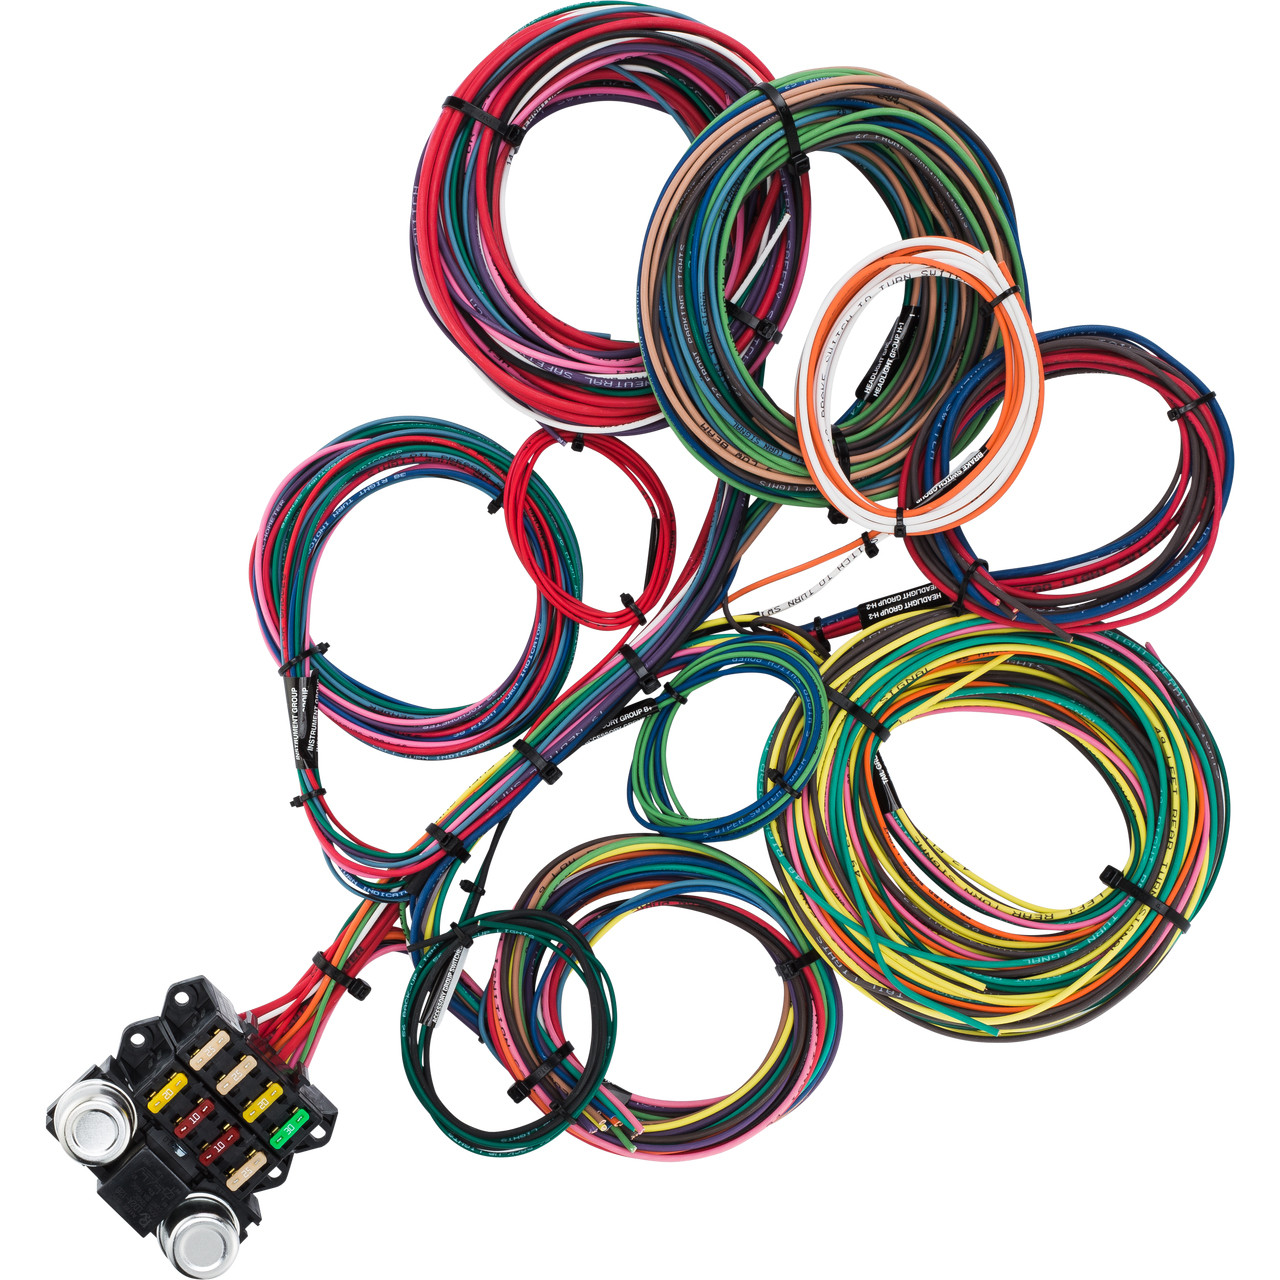 8 Circuit Wiring Harness Diagram Master Blogs Ez 12 Universal Budget Wire Kwikwire Com Electrify Your Ride Rh 21 Painless